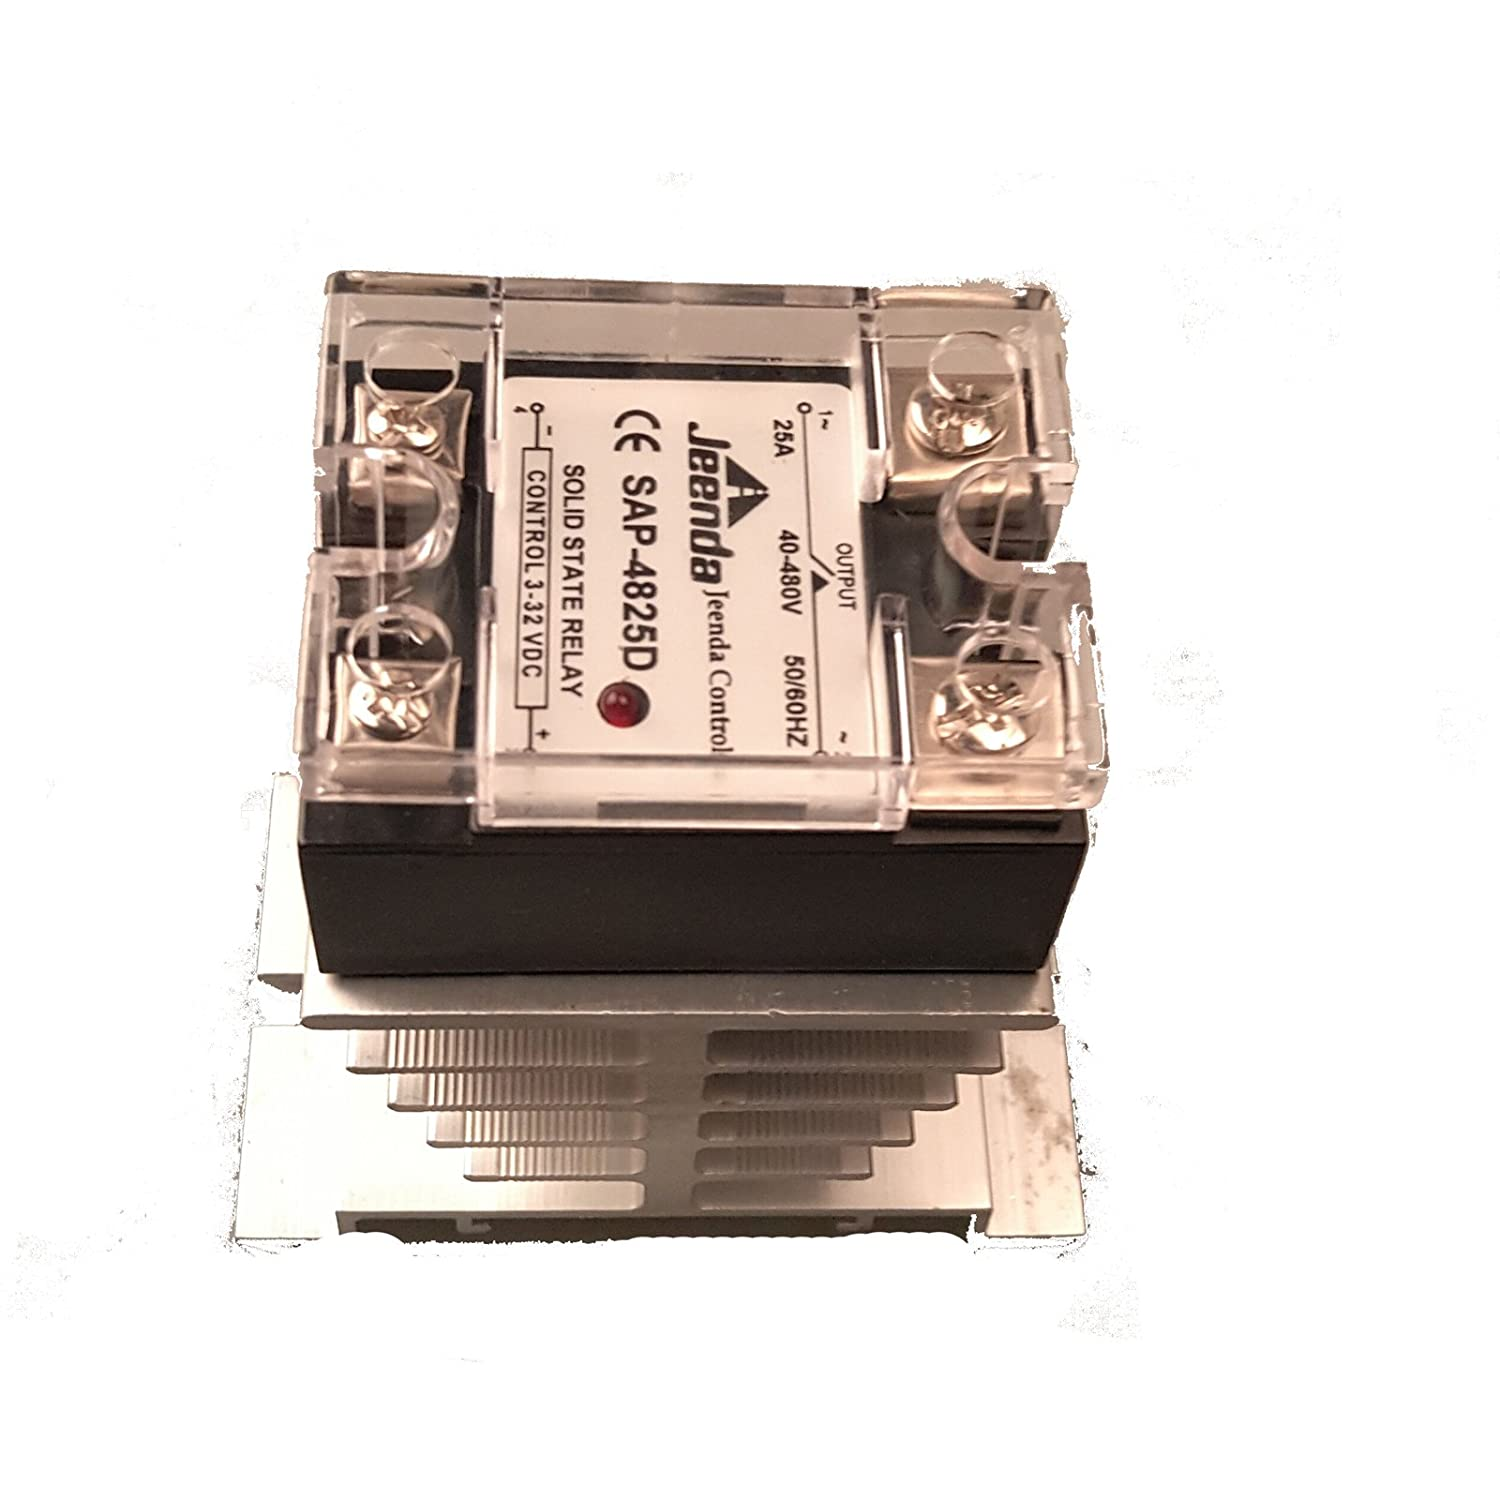 Holdwell Solid State Relay Ssr Dc Ac 25a 3 32vdc 40 480vac With Canada Heatsink For Crydom D4825d Control Module Amazon